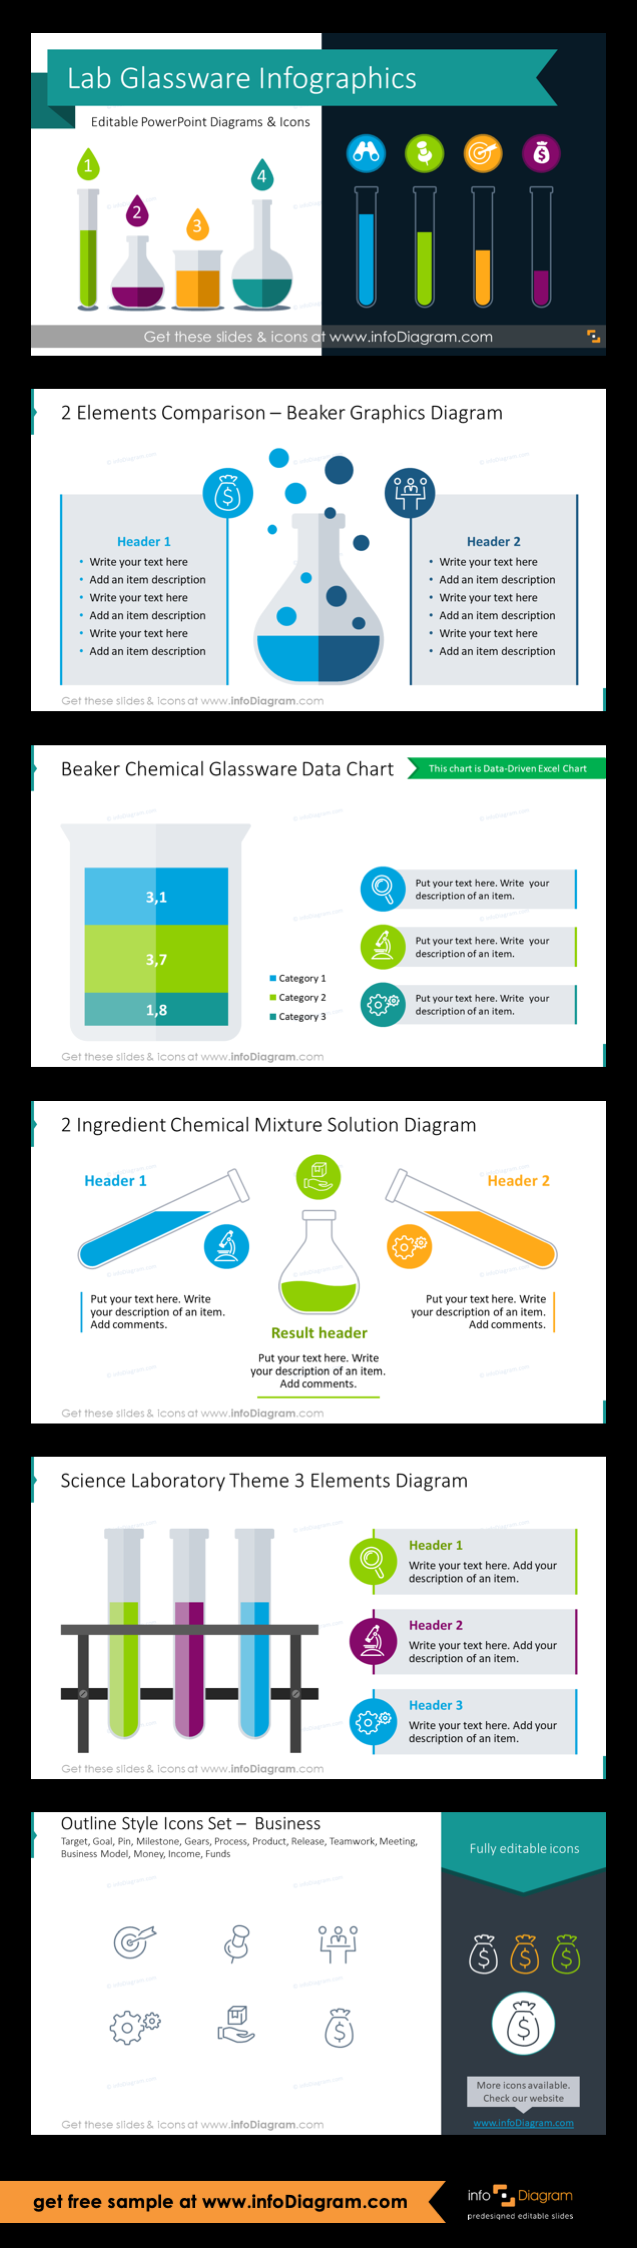 Get 16 Chemical Lab Process test Tubes Diagrams for